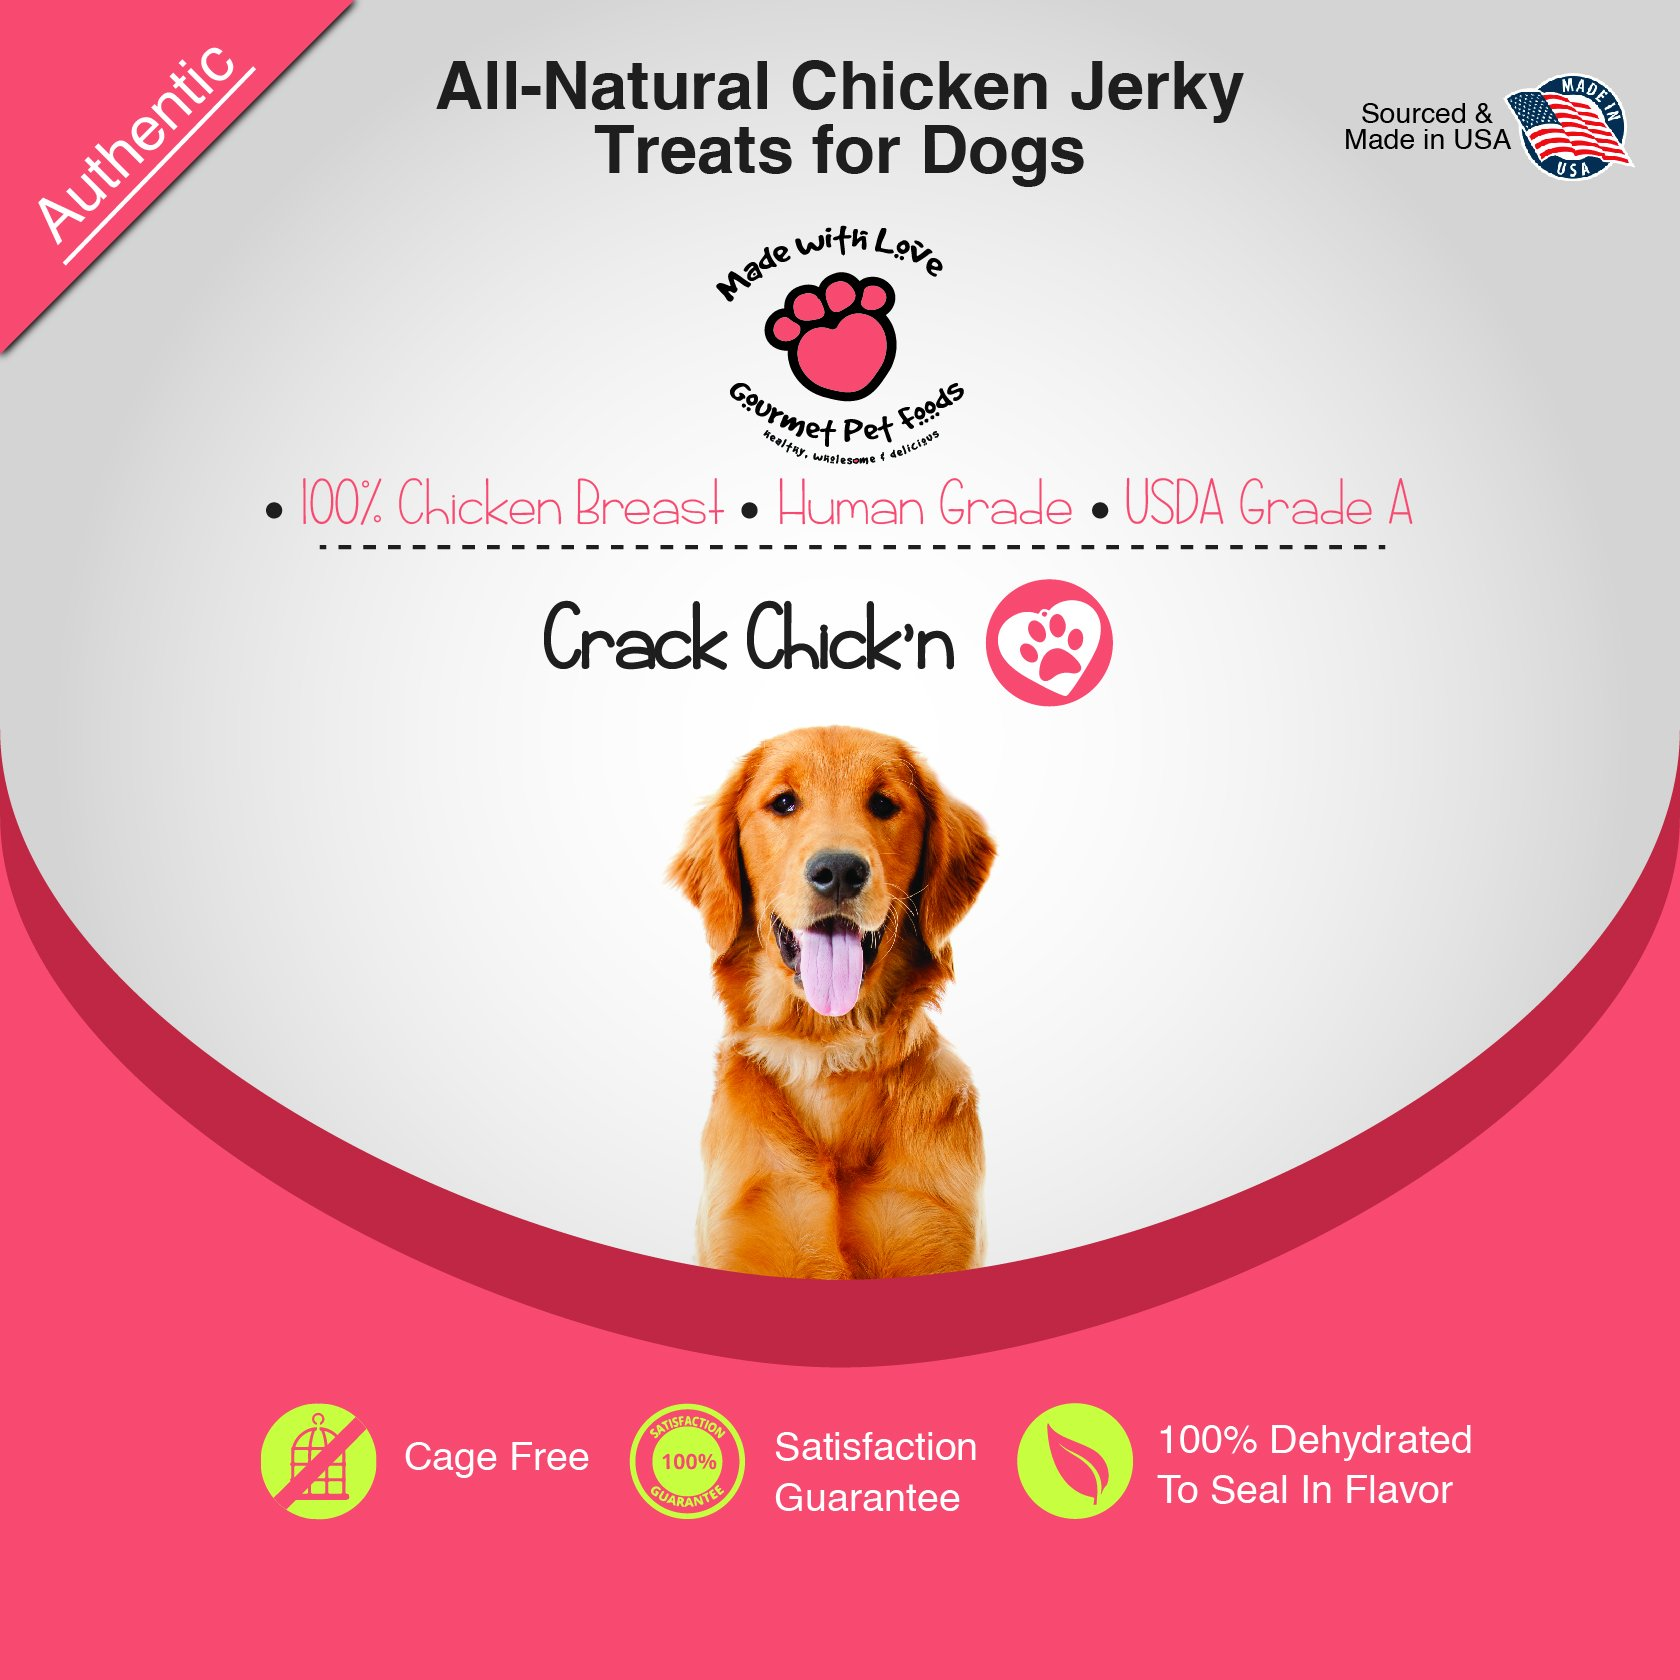 All Natural, Dehydrated Chicken Jerky Dog Treats, 100% Chicken Breast, Human Grade, USDA Grade A, Cage Free, Non-GMO, Grain Free, No Preservatives, Sourced & Made in USA, Great for Training by MADE WITH LOVE - CRACK CHICK'N (Image #2)